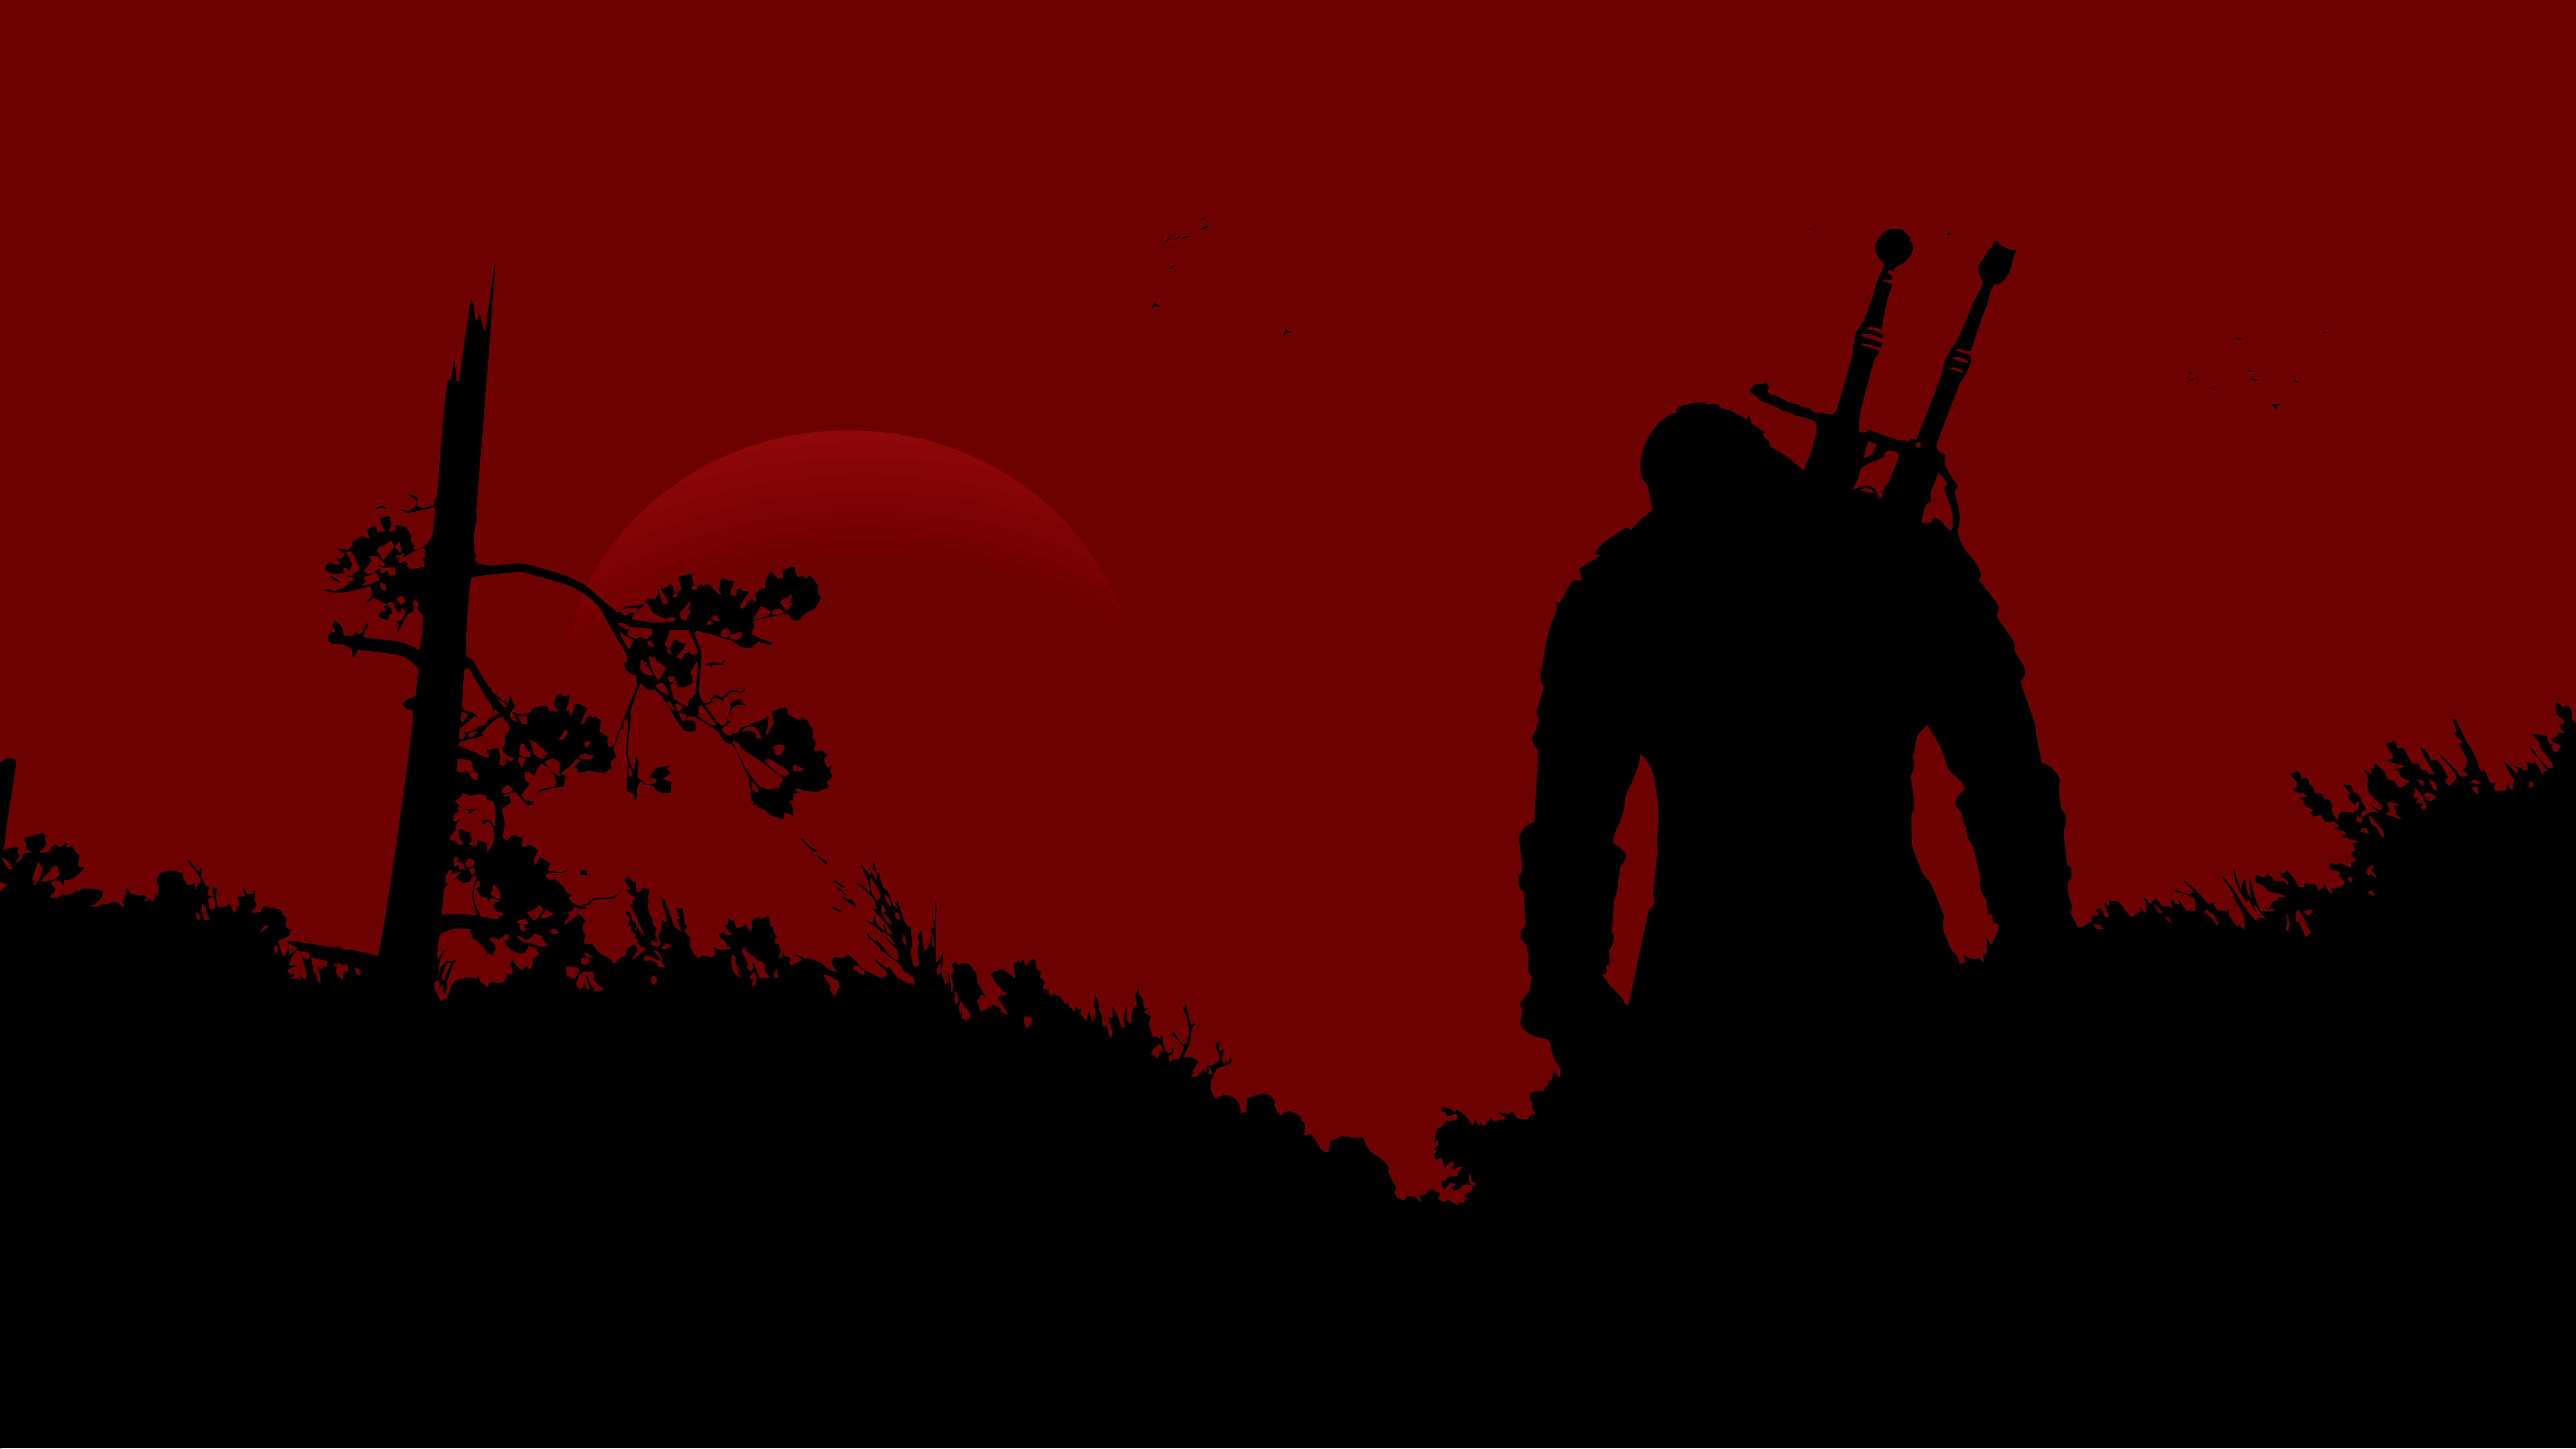 Minimalist Wallpaper Red Black Thewitcher3 Ps4 Wildhunt Ps4share Games Gaming Thewitcher Thewitcher3wildhunt Minimalist Wallpaper The Witcher Wallpaper